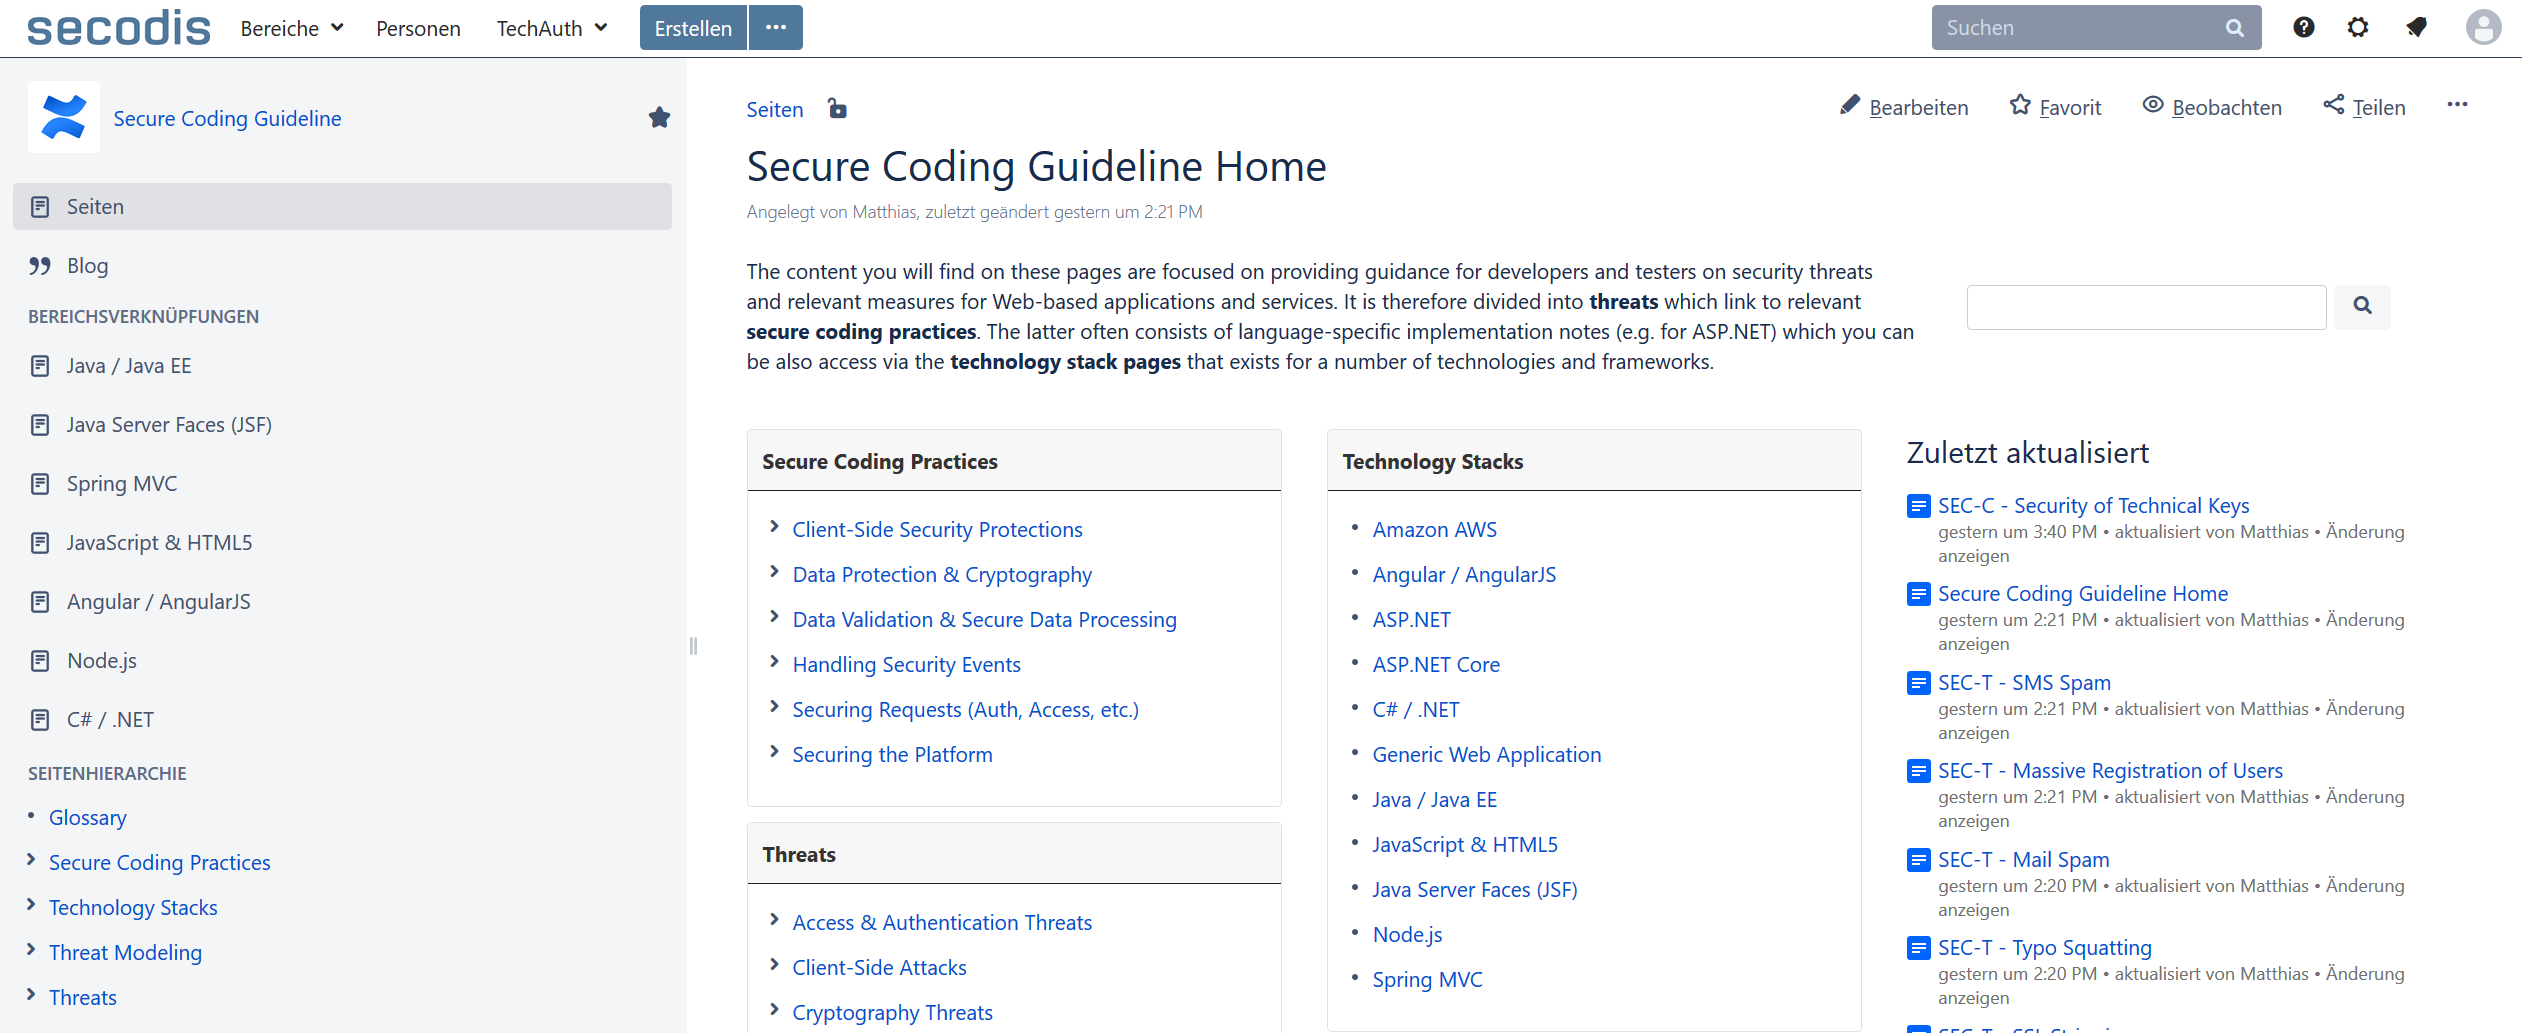 2018-11-23 14_26_11-Secure Coding Guideline Home - Secure